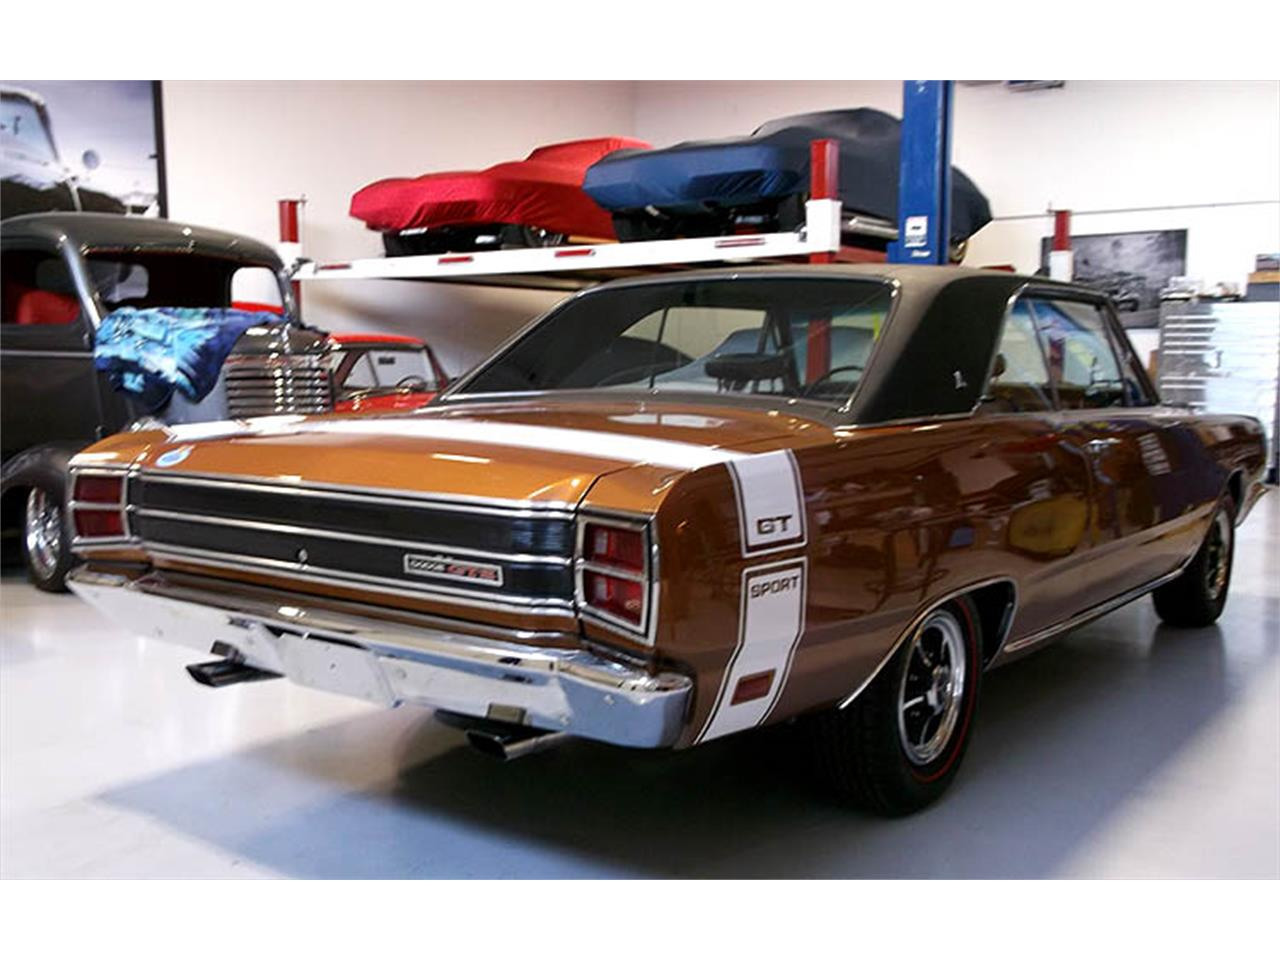 Large Picture of 1969 Dart GTS - $77,500.00 Offered by a Private Seller - Q0YM